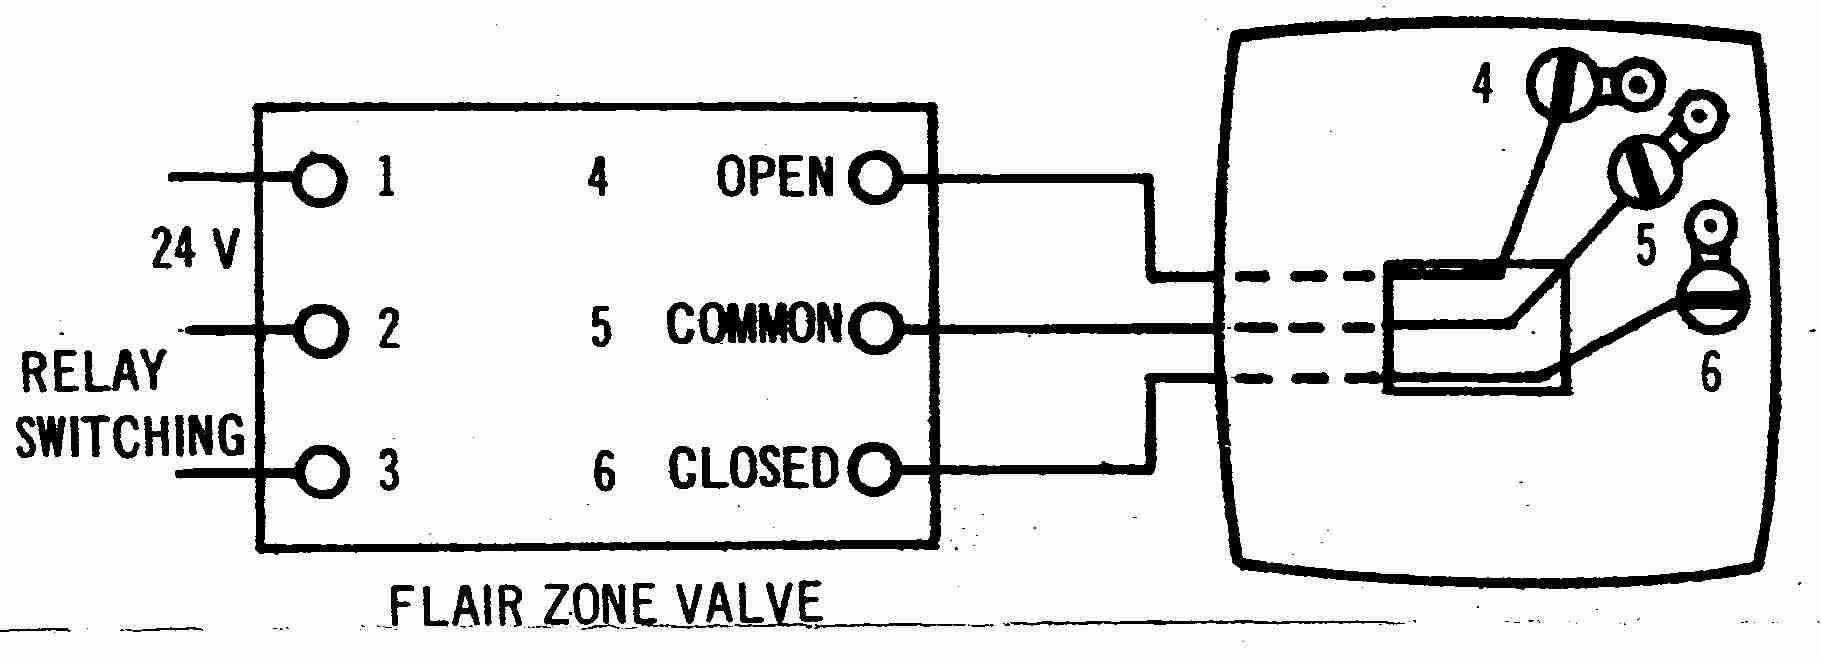 3 Wire Thermostat Wiring Diagram from inspectapedia.com